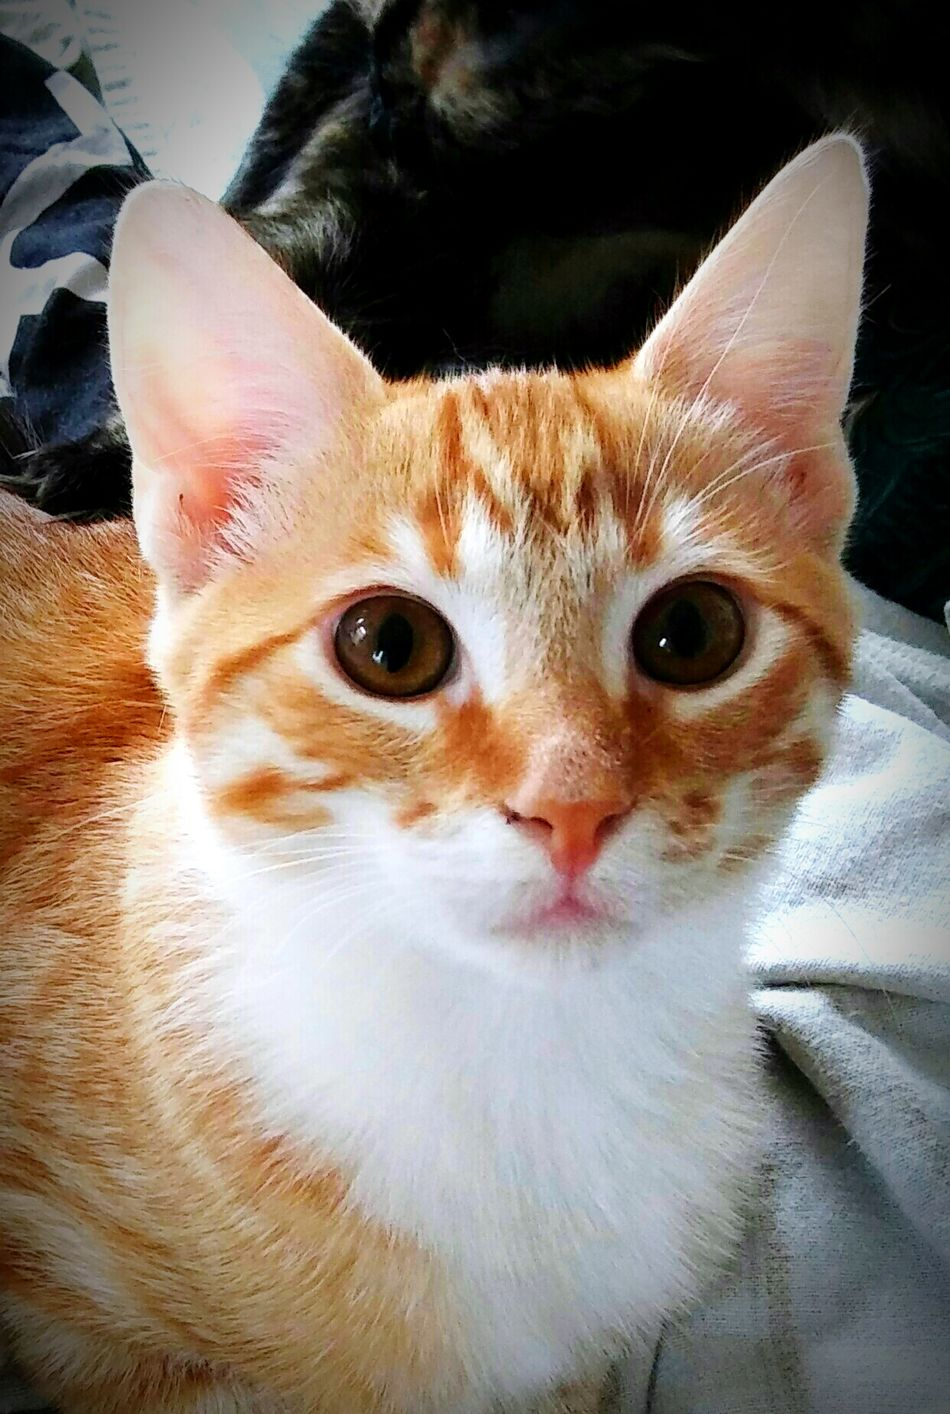 My sweet and handsome Lil Maximus ..😘😘🙌💕💕💙💚💙 Hanging Out Check This Out Taking Photos Cheese! Hi! Bayareaphotography Beautiful Eyes Gingersrule Gingercatsofinstagram Loveallanimals Cat Eyes Animals Catsofeyeem Catlovers ❤️🔥❤️ Paws And Purrs Catsoftheworld Animal Photography Pawsome Catstarcat Precious Little Moments